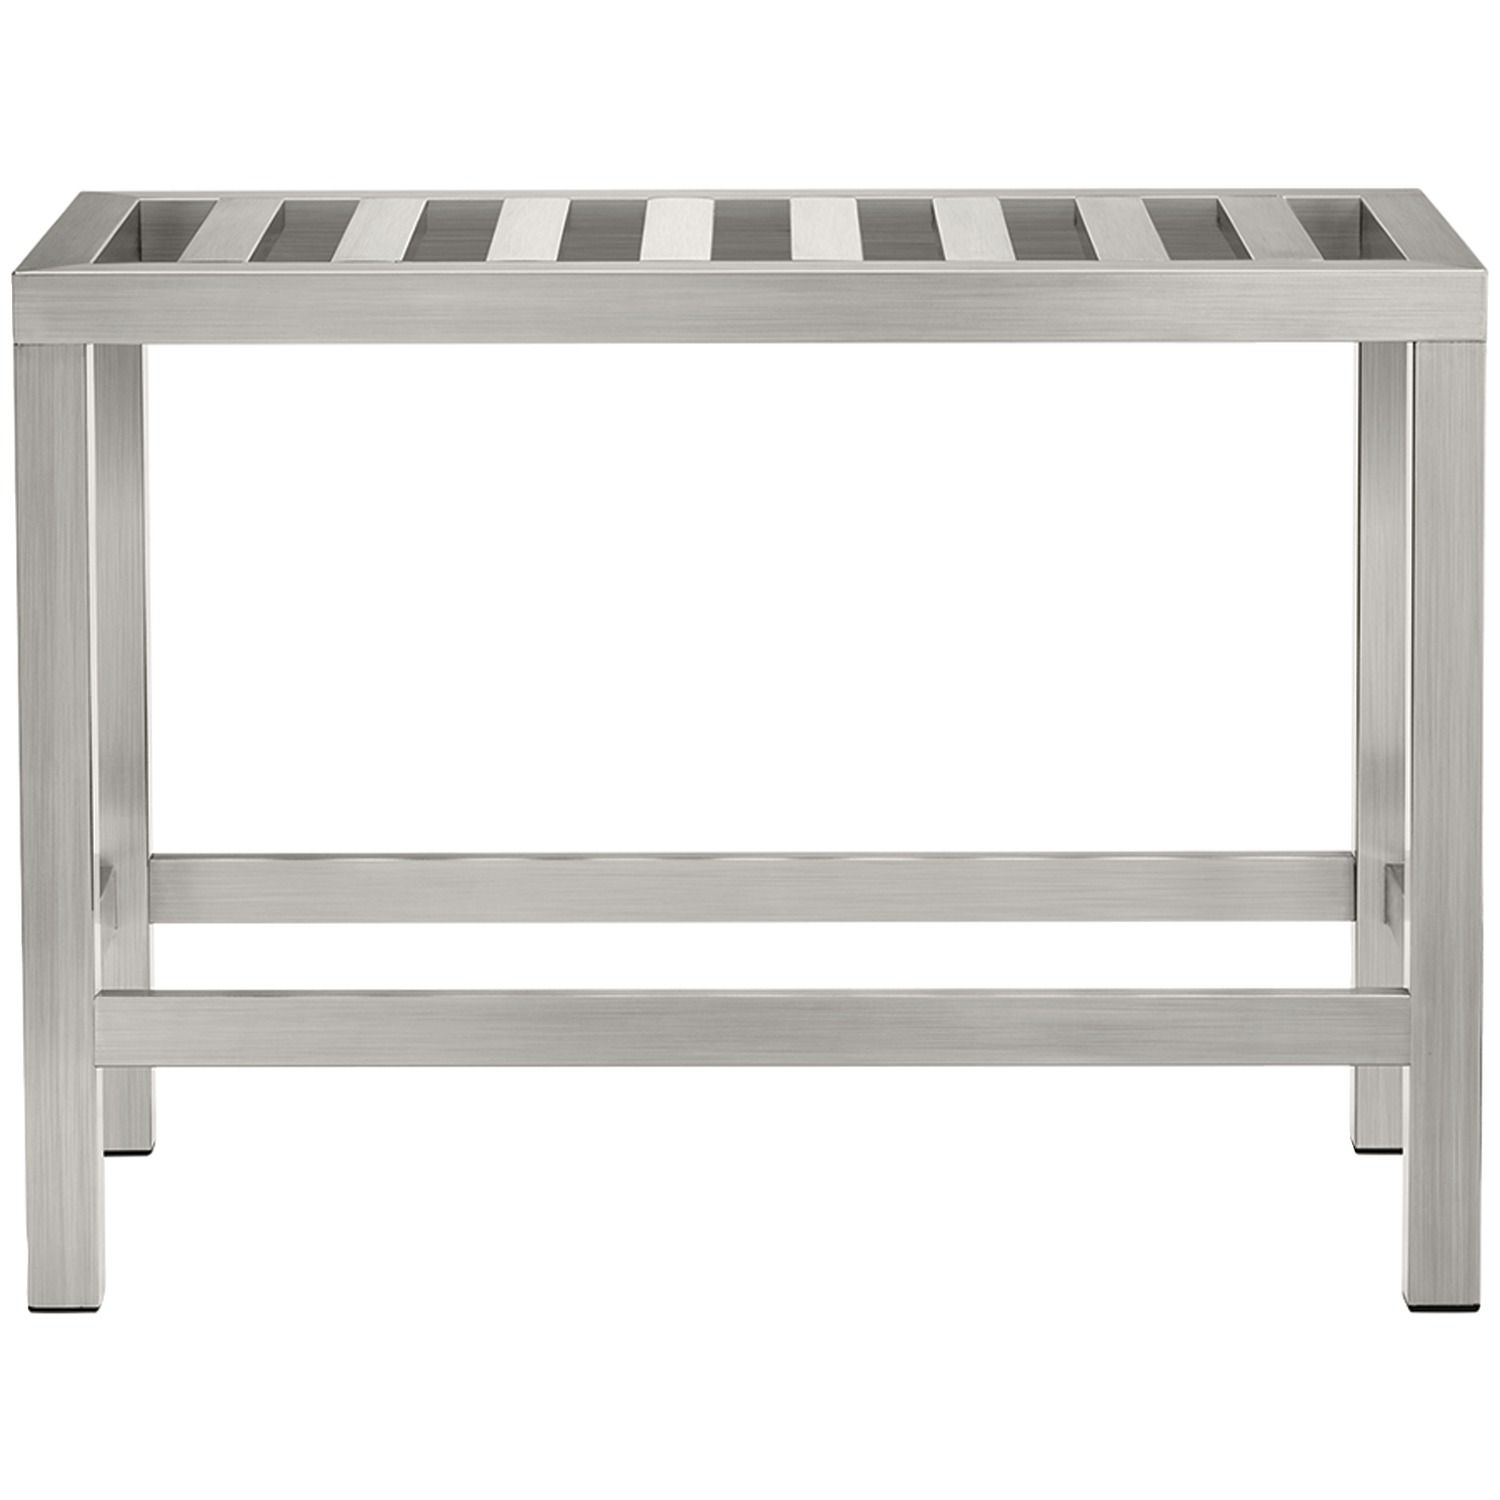 Conair Con06 The Brooklyn Collection Stainless Steel Vanity Bench by Conair